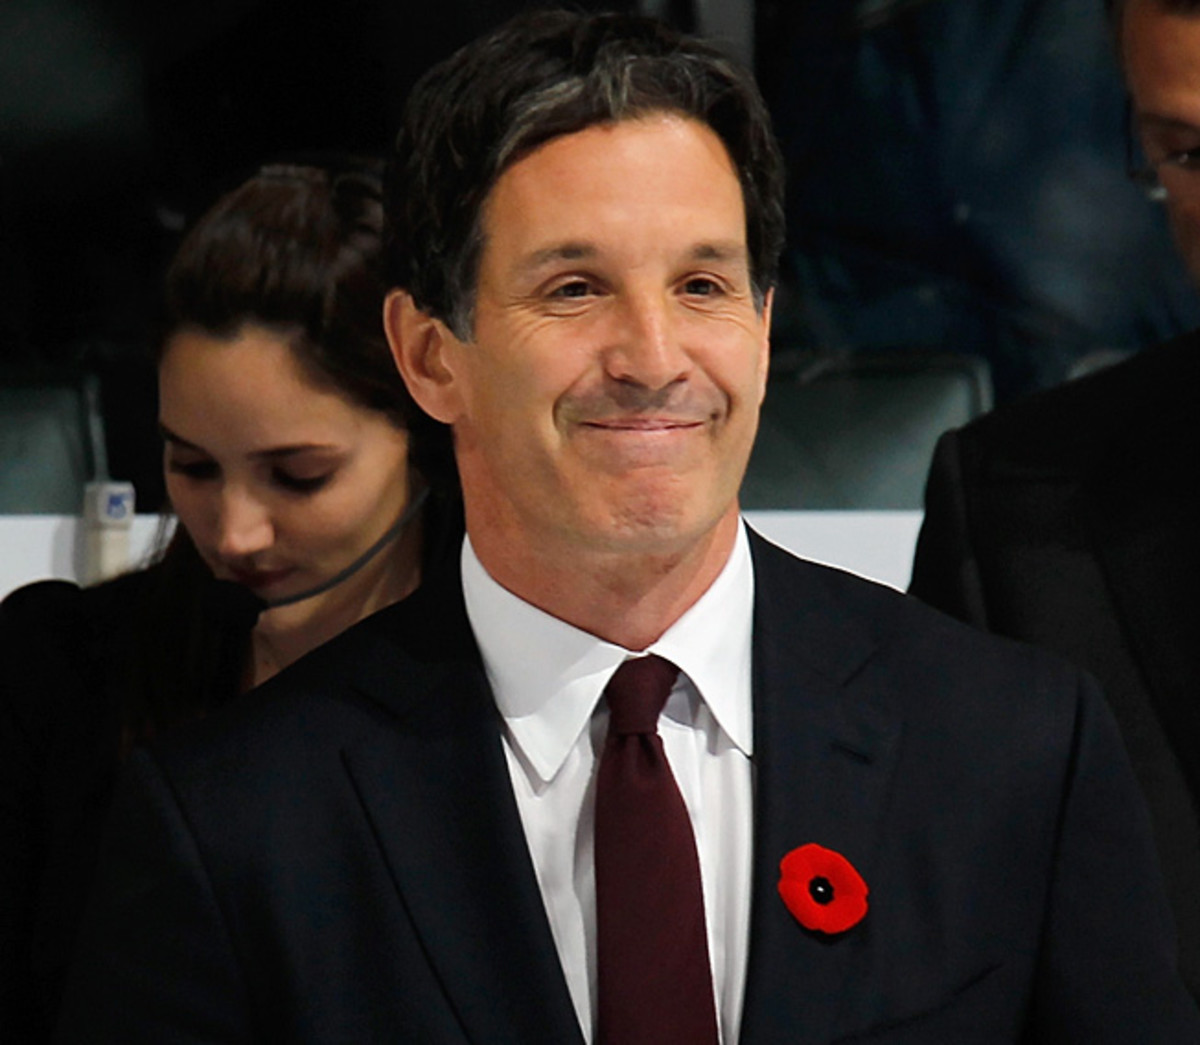 Why is this man smiling? Brendan Shanahan has much to do to turn the woeful Maple Leafs around.